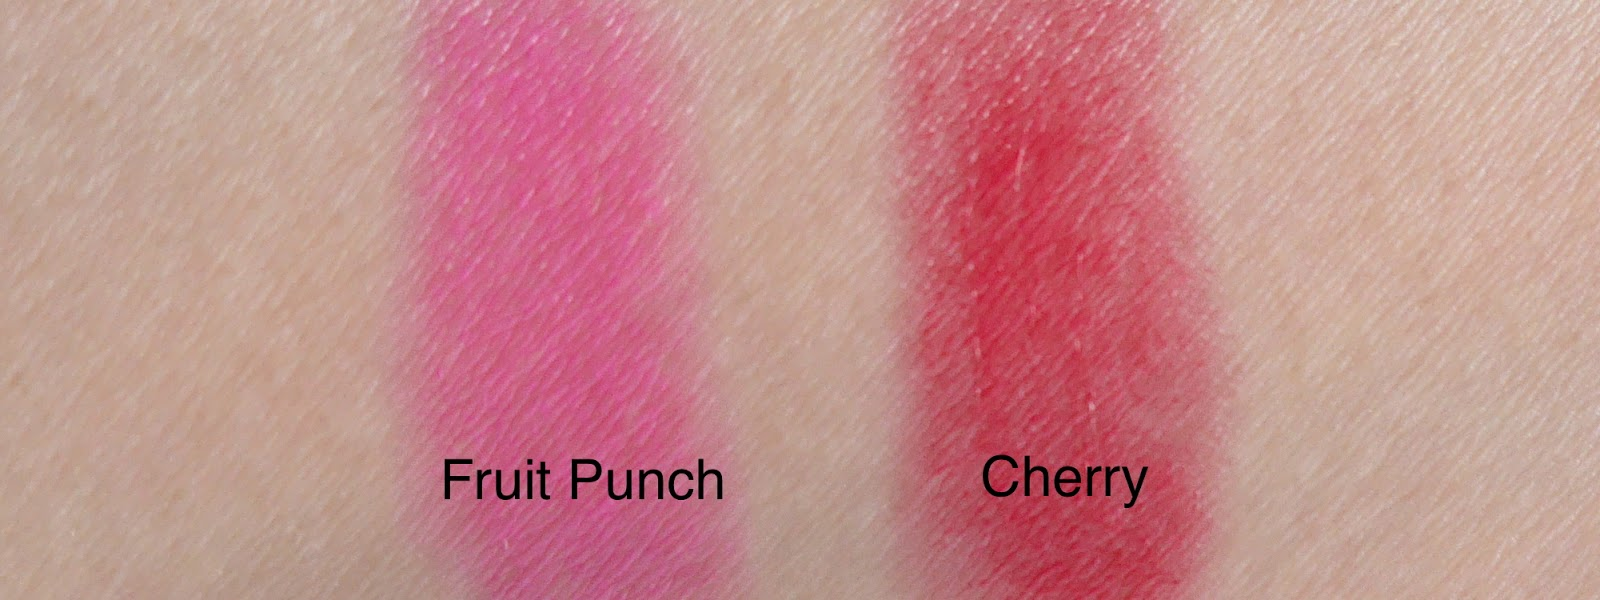 annabelle lipsies cherry fruit punch review swatch